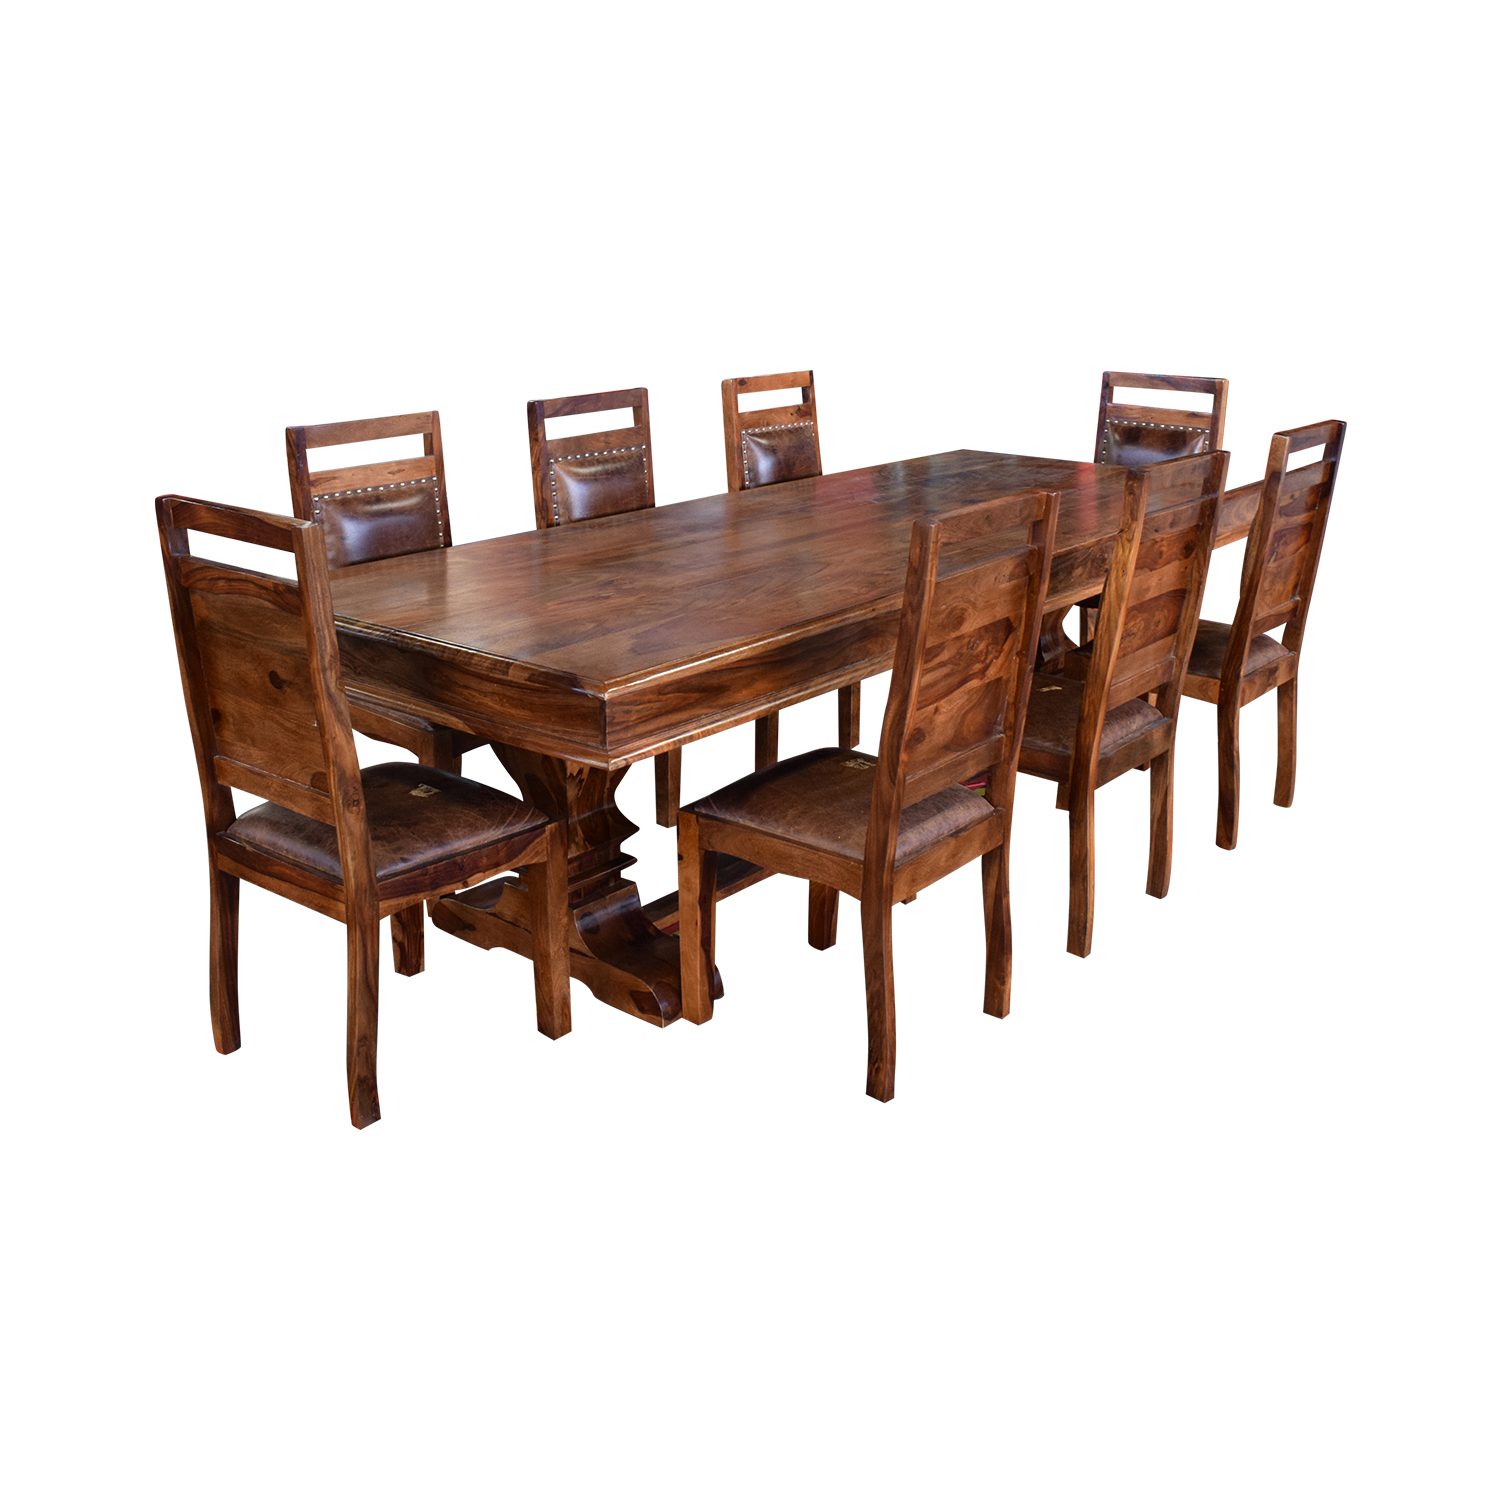 buy Sierra Living Concepts Sierra Living Concepts Wood Dining Set online